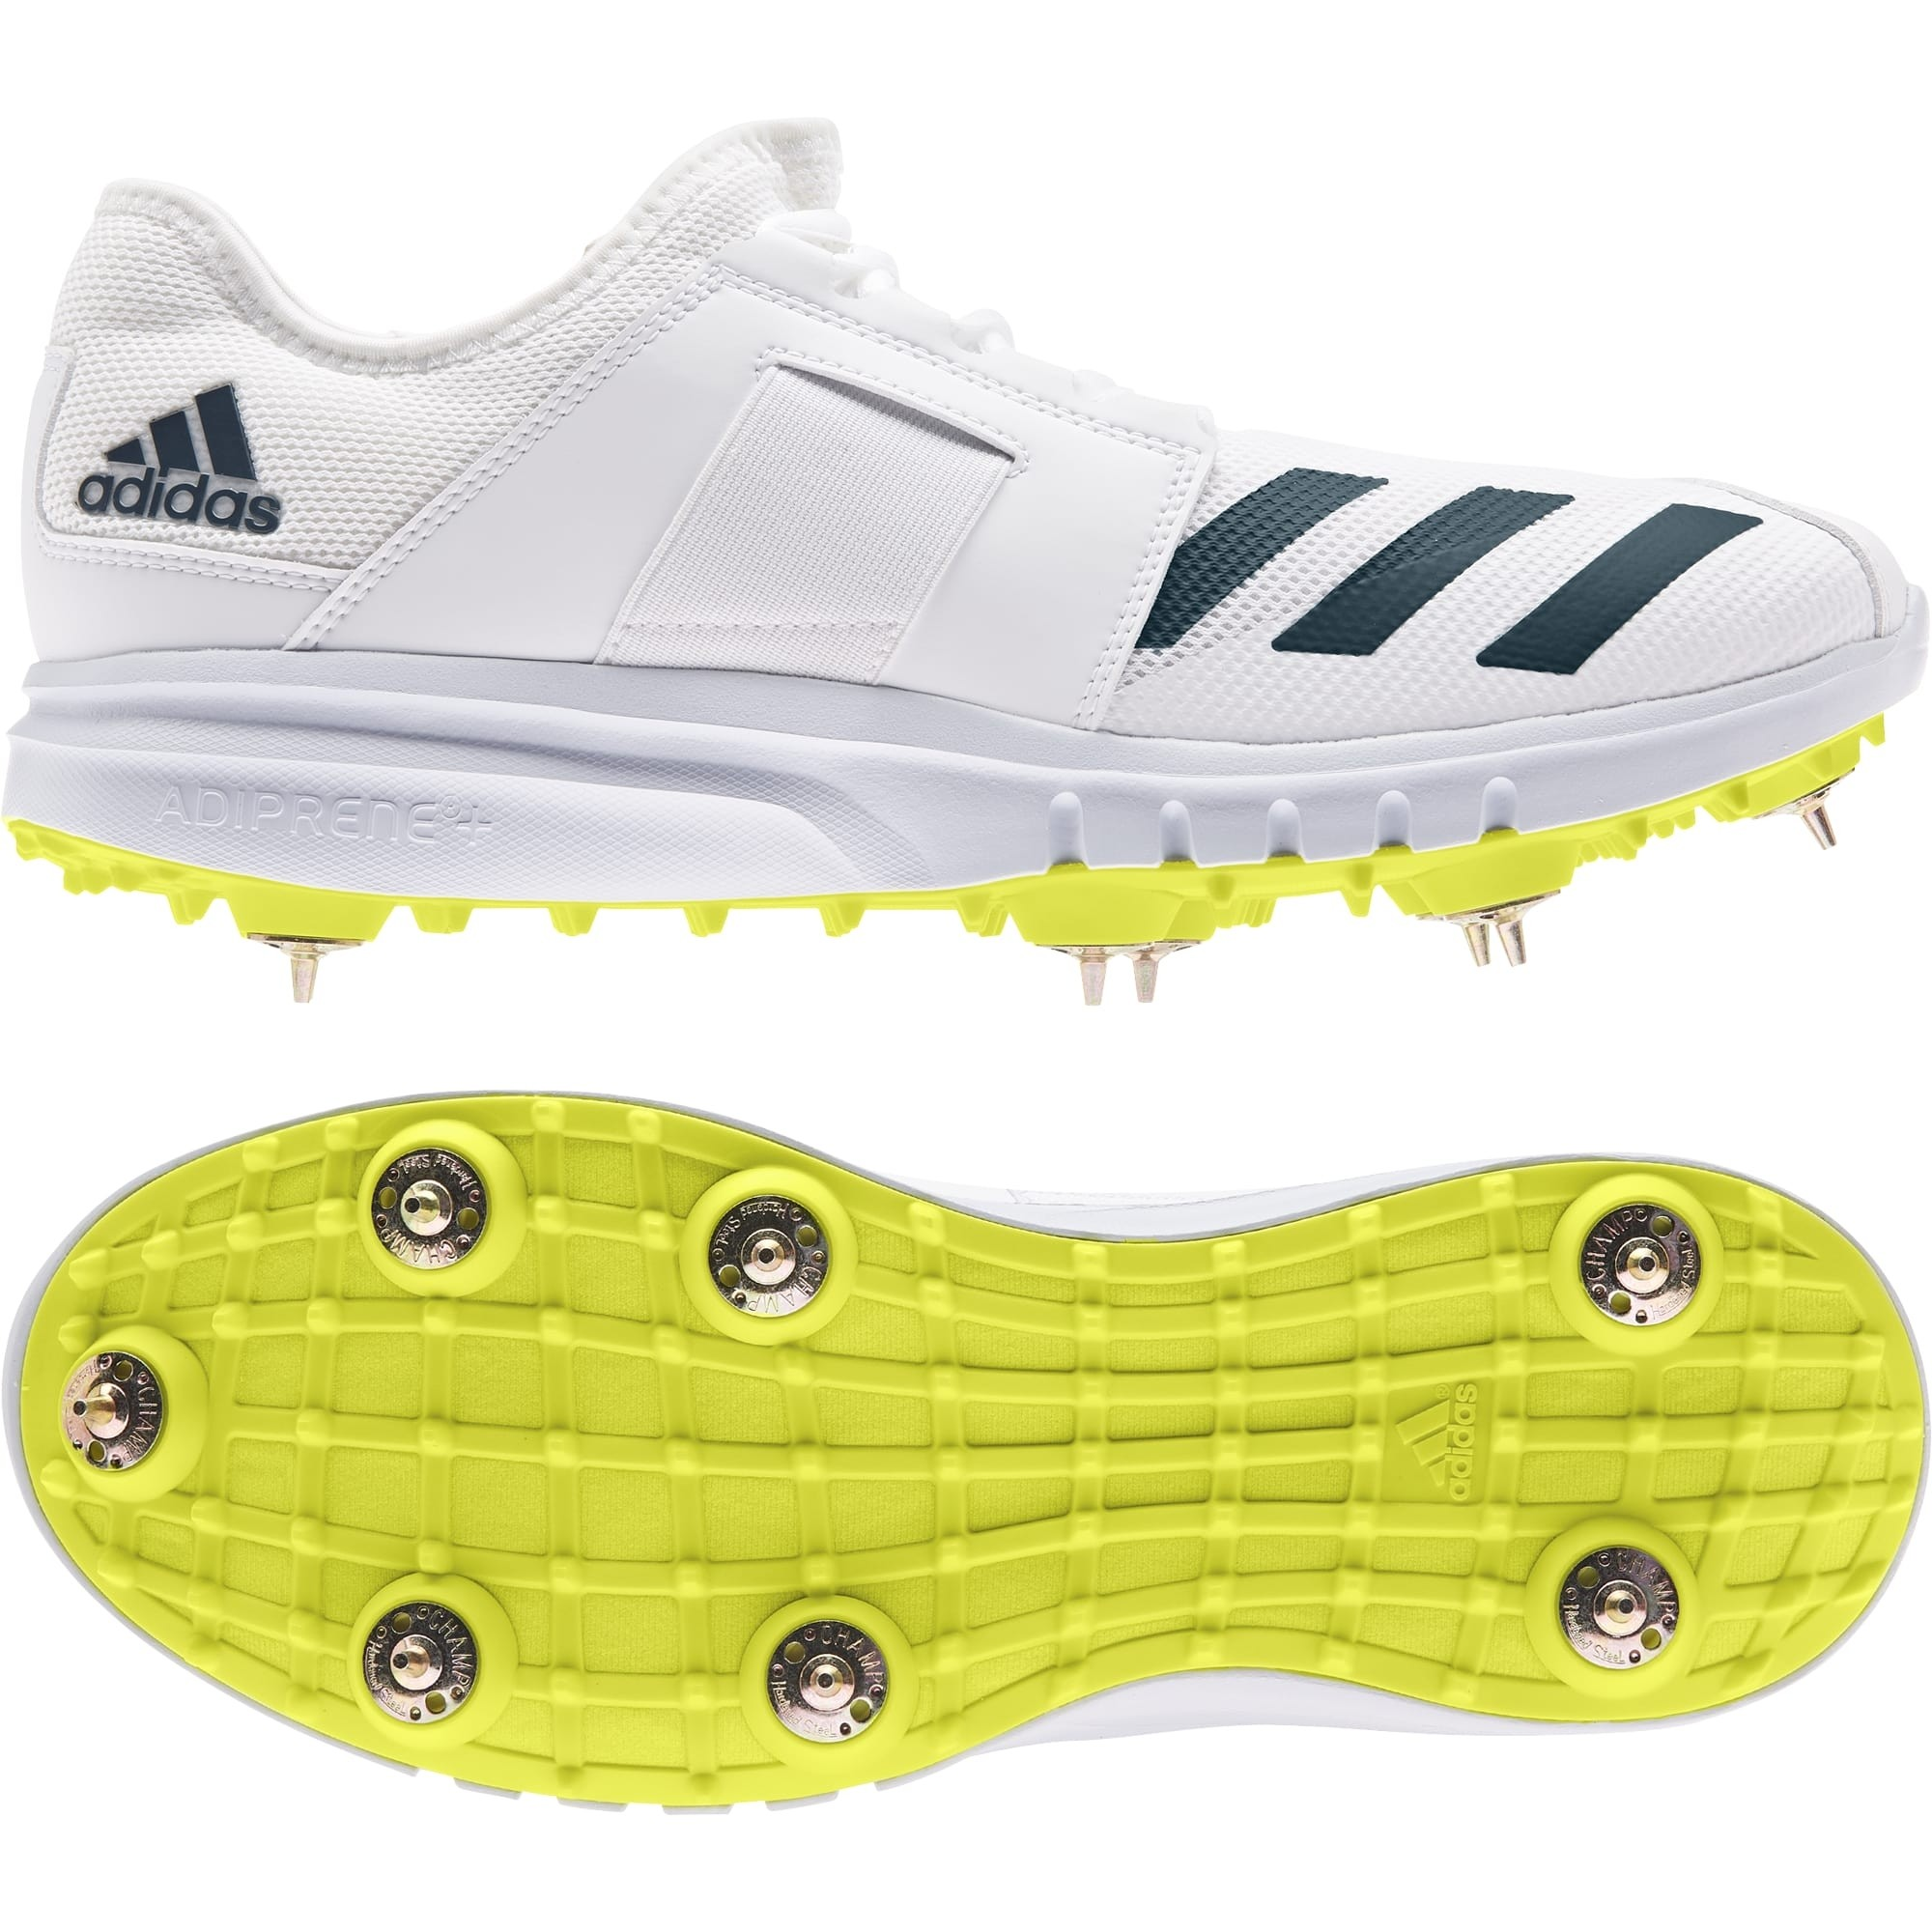 2021 Adidas Howzat Full Spike Cricket Shoes - Acid Yellow